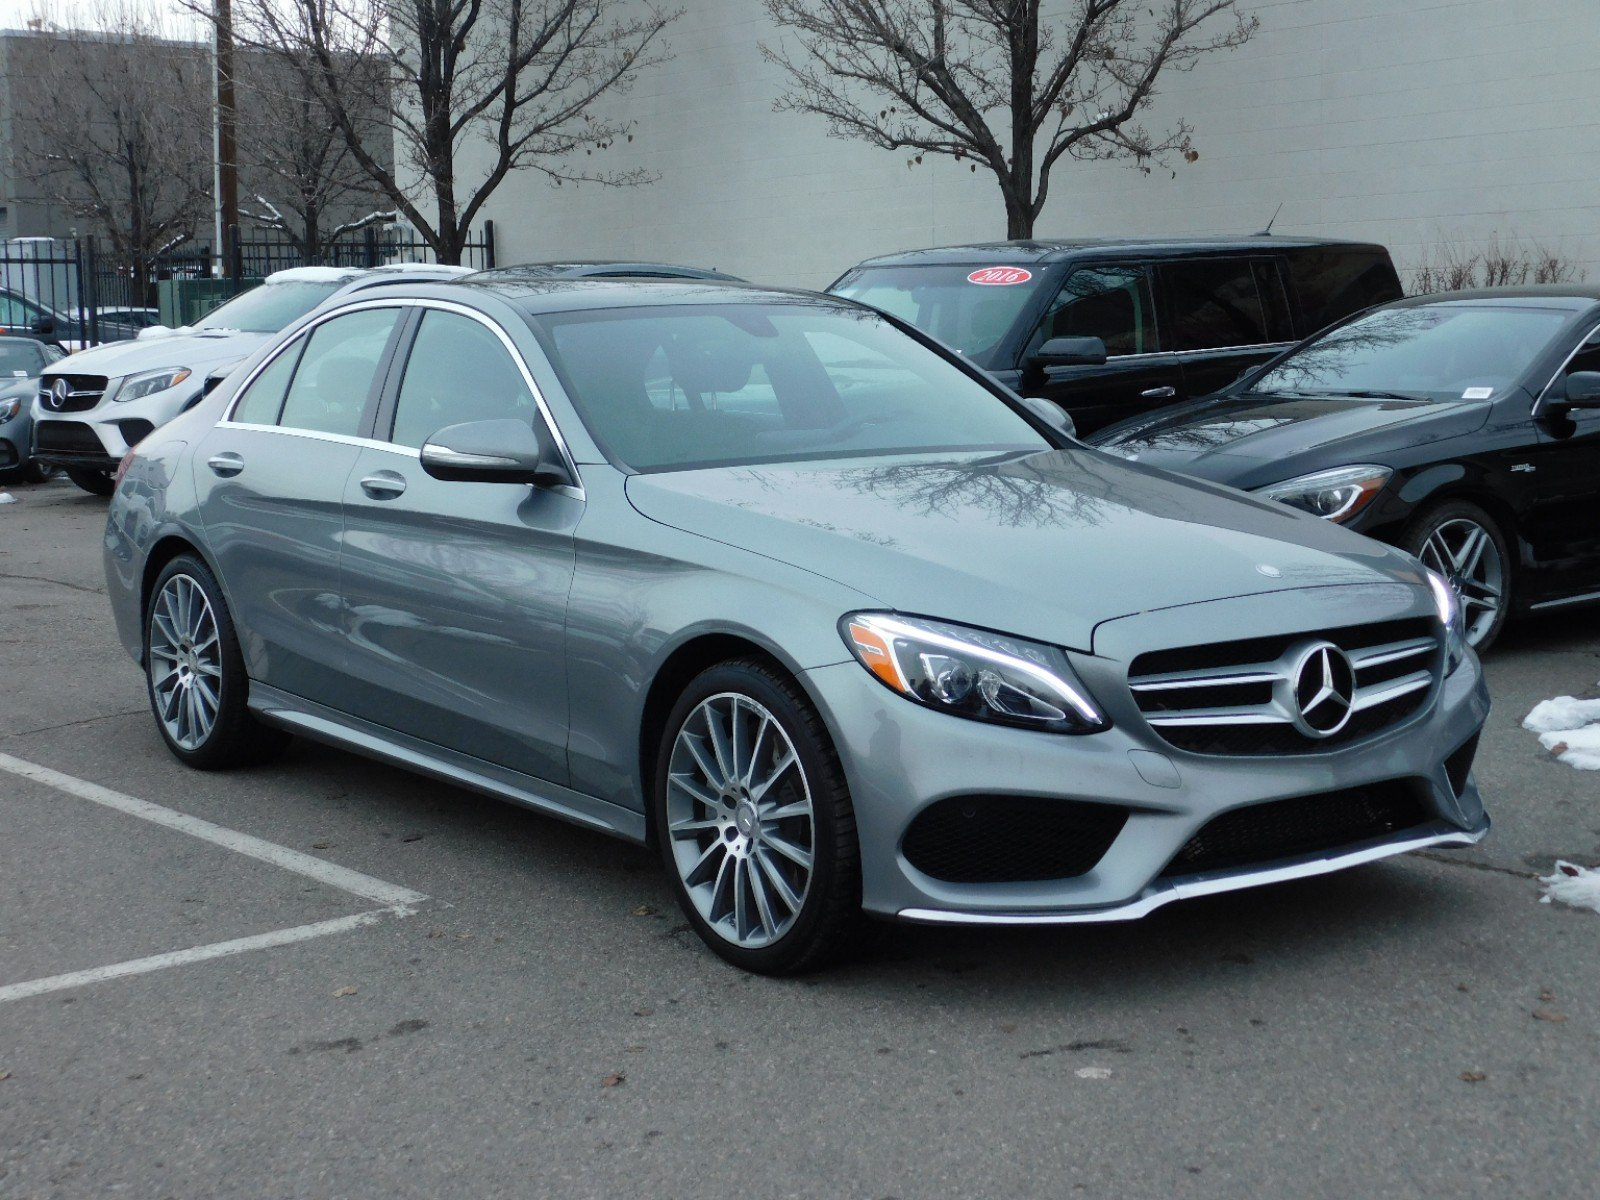 Certified Pre Owned 2015 Mercedes Benz C Class 4DR SDN C 300 SPORT